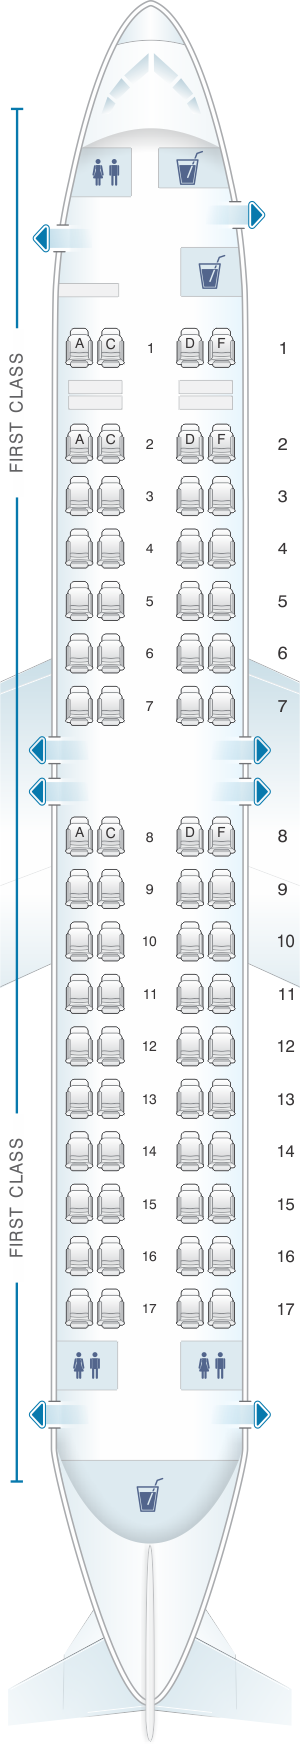 Seat map for Xtra Airways Boeing B737 400 68pax